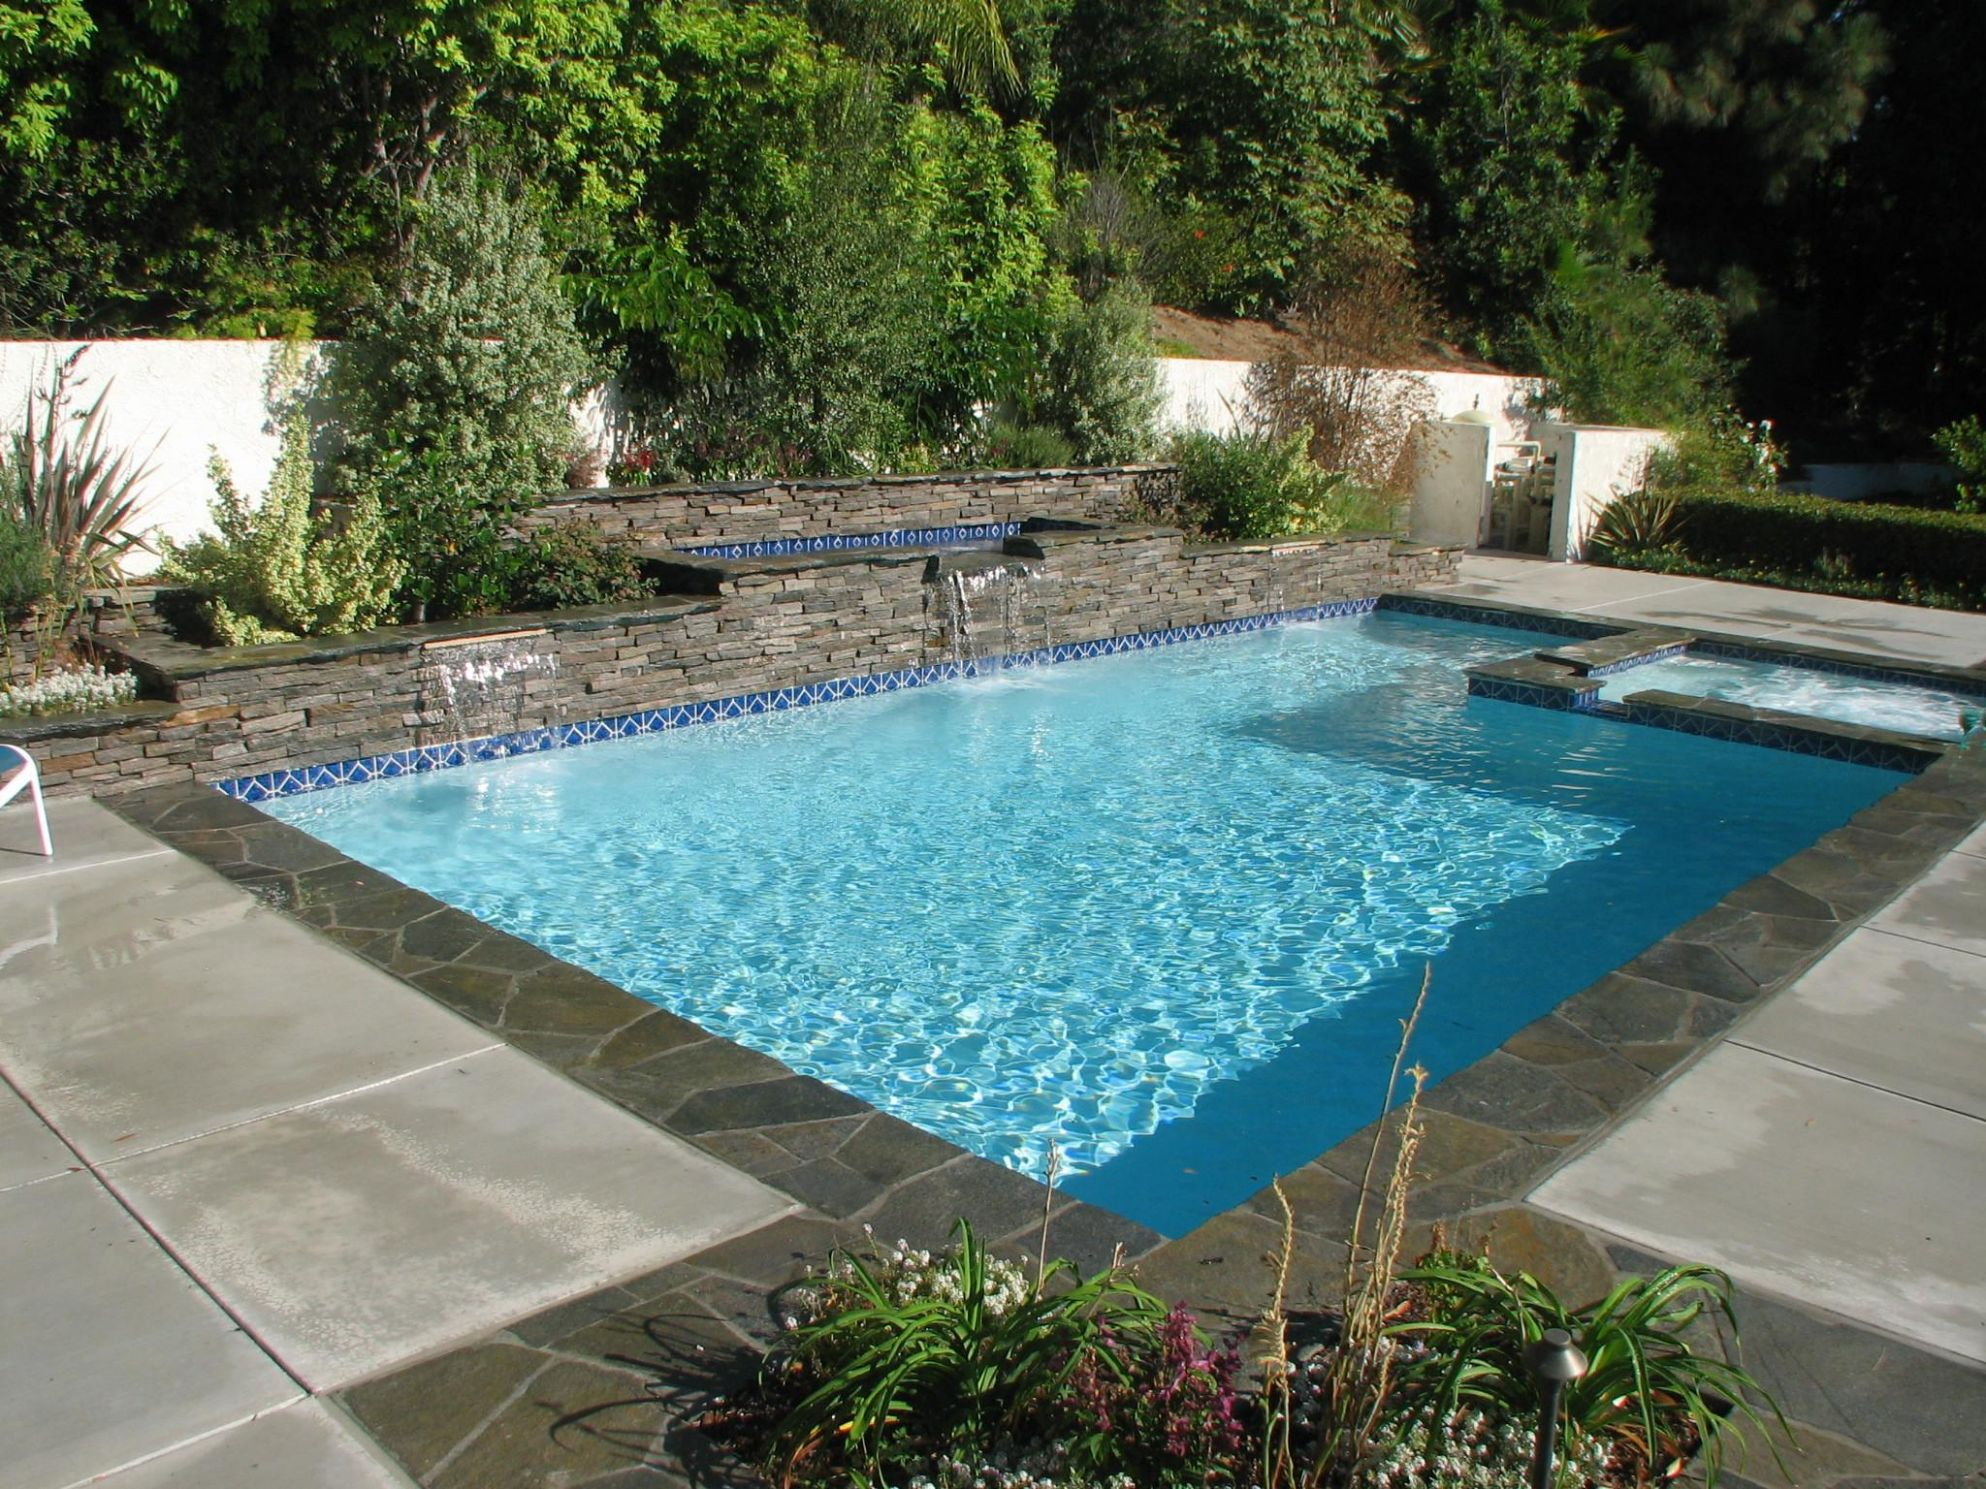 10 Creative Small Pool Ideas That Are Sparkling With Elegance ...